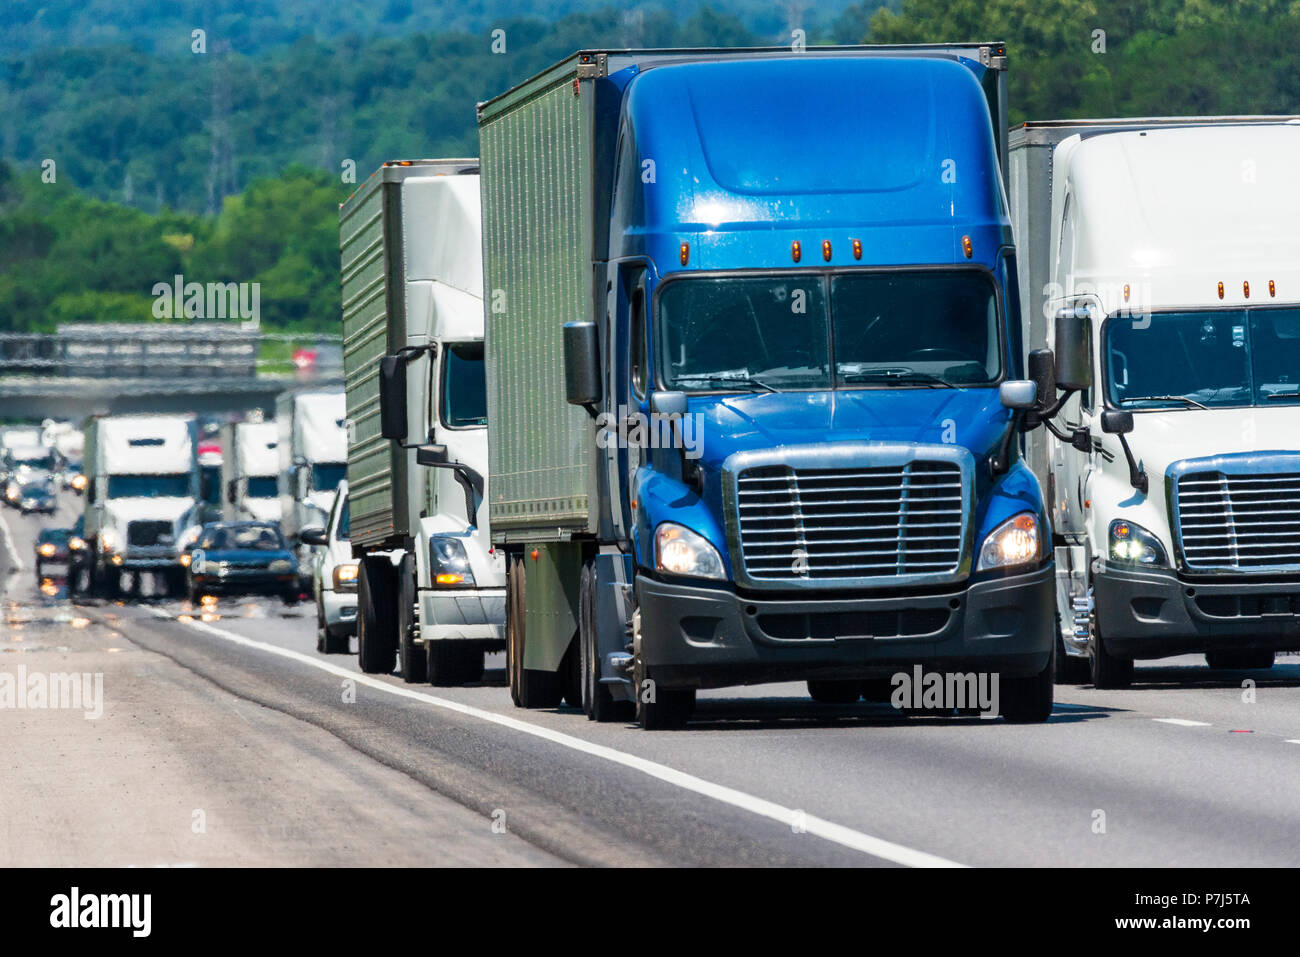 A long steady line of truck traffic on a busy interstate. Image shot on hot day. Heat waves from asphalt create distortion, especially on vehicles far - Stock Image